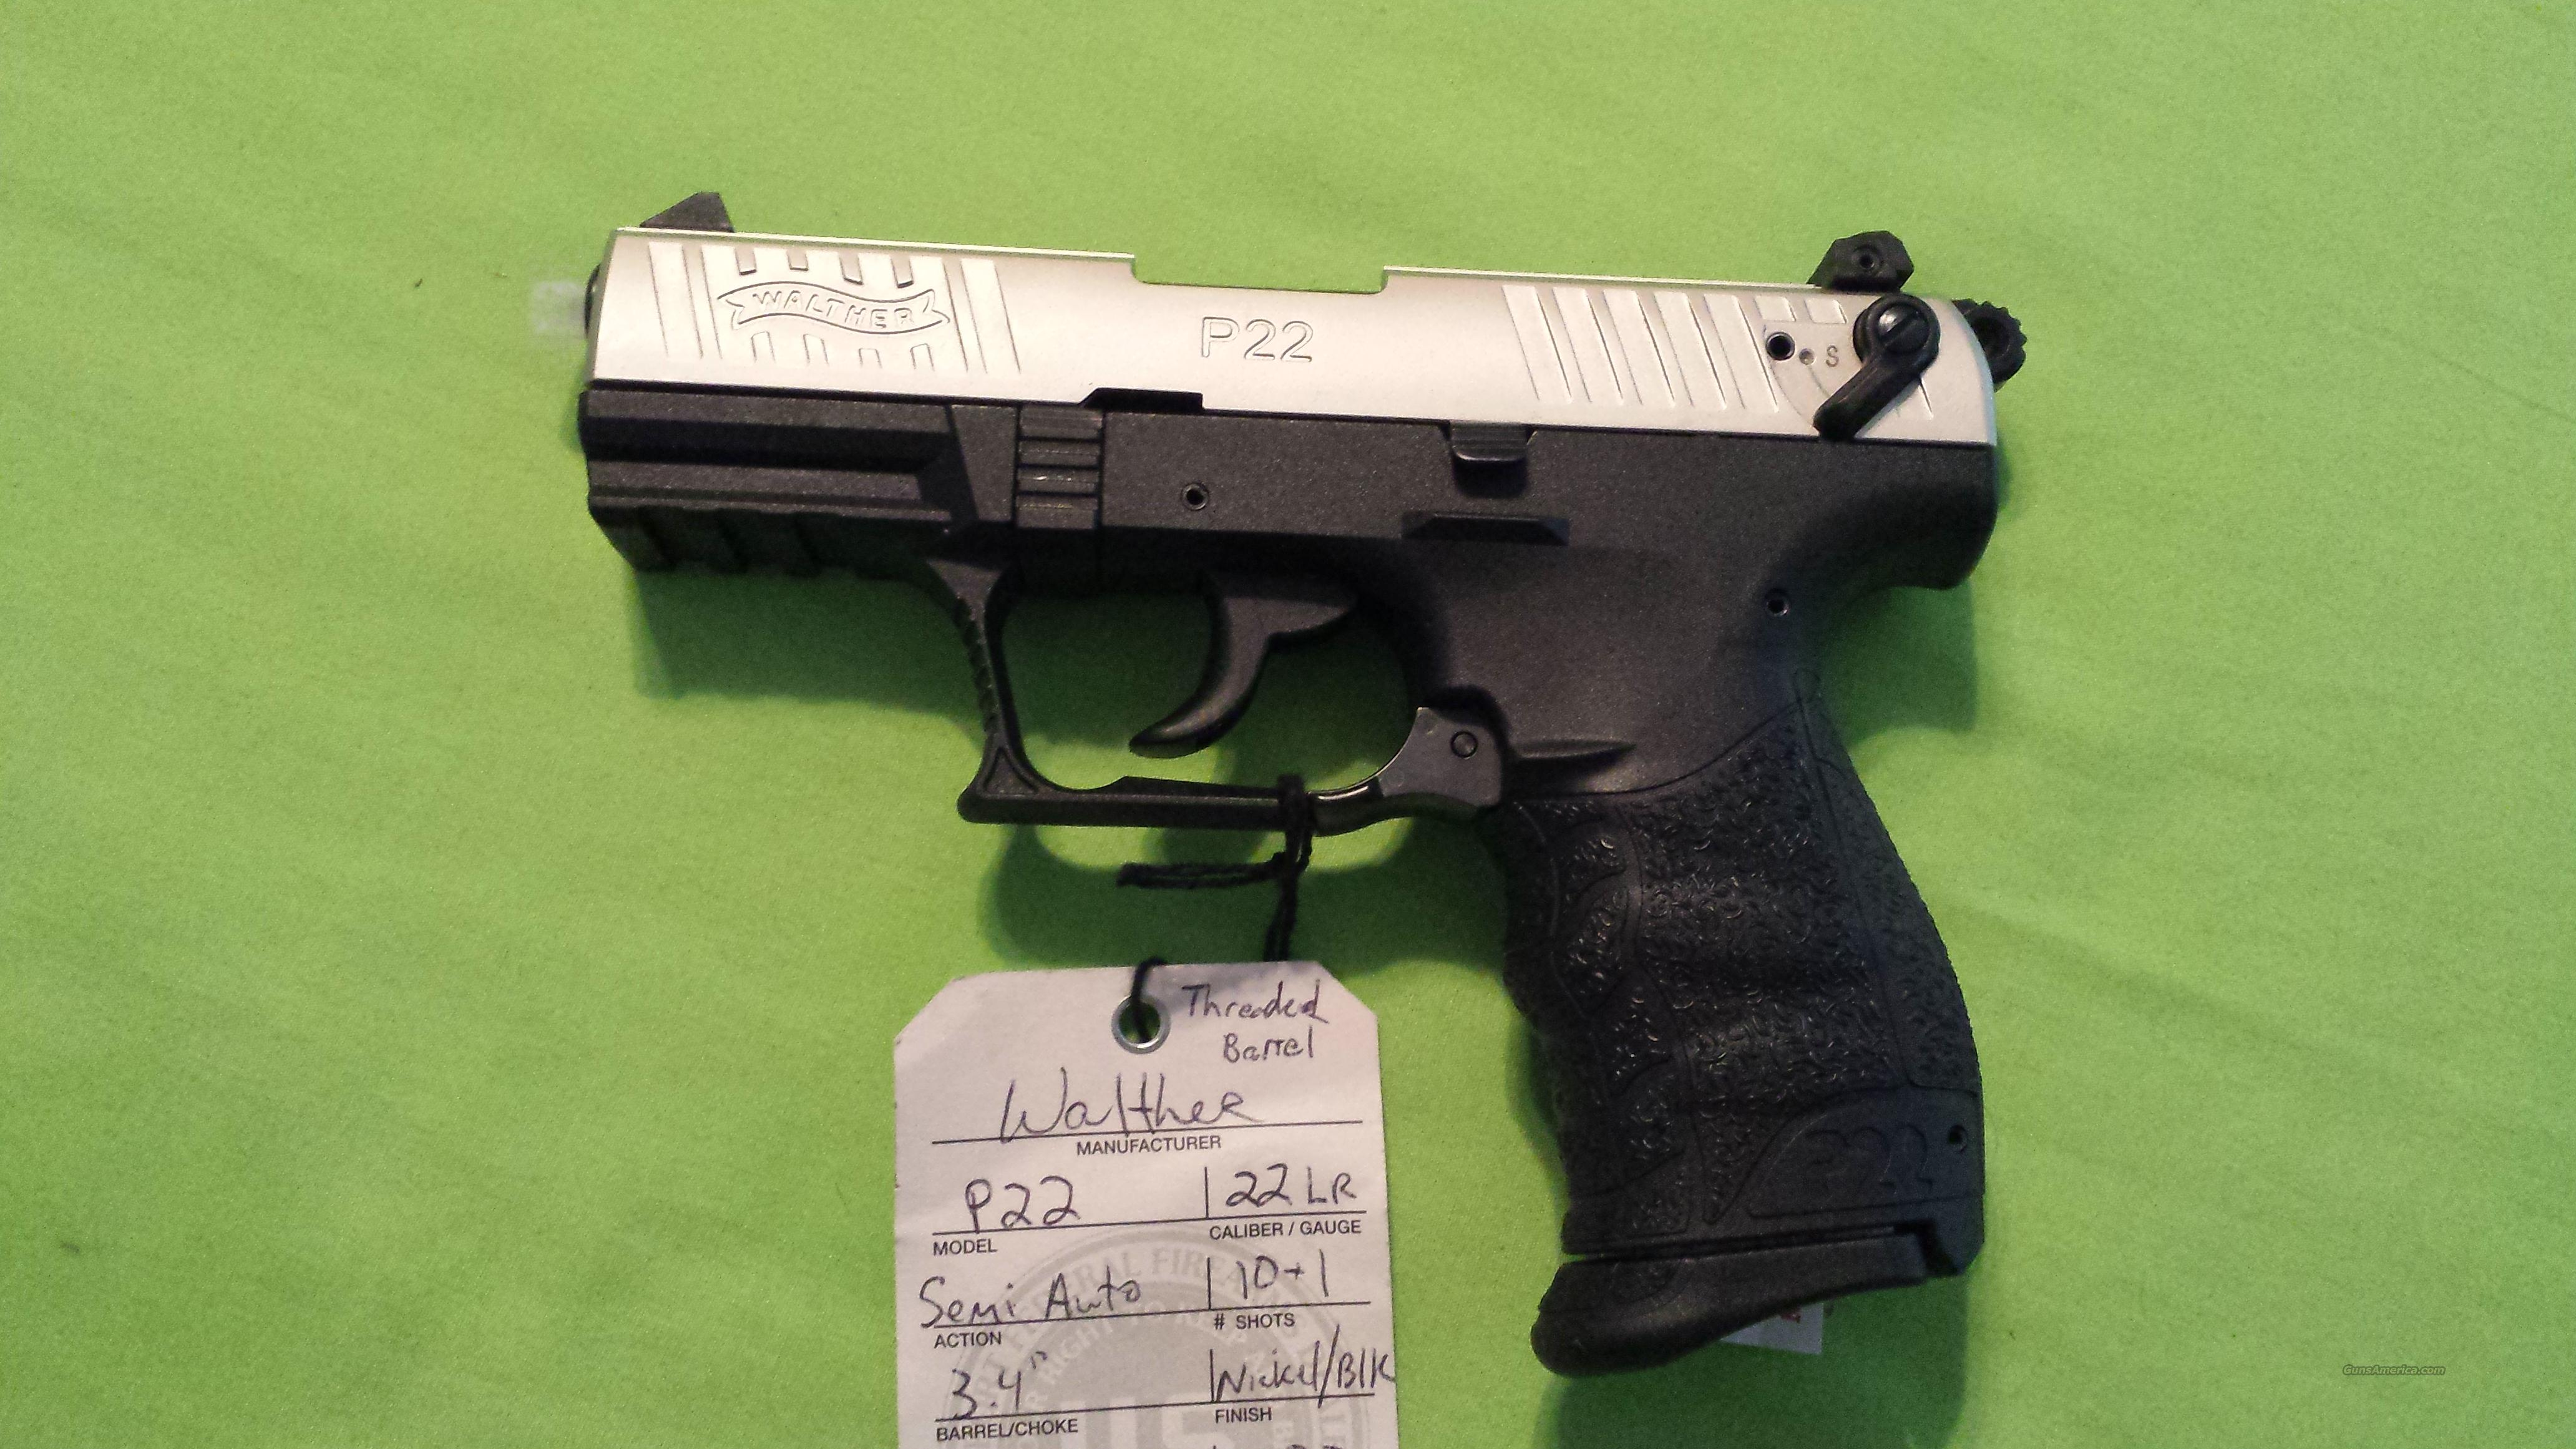 "WALTHER P22 22LR 3.4"" NICKEL / BLK 10RD THREADED   Guns > Pistols > Walther Pistols > Post WWII > P22"